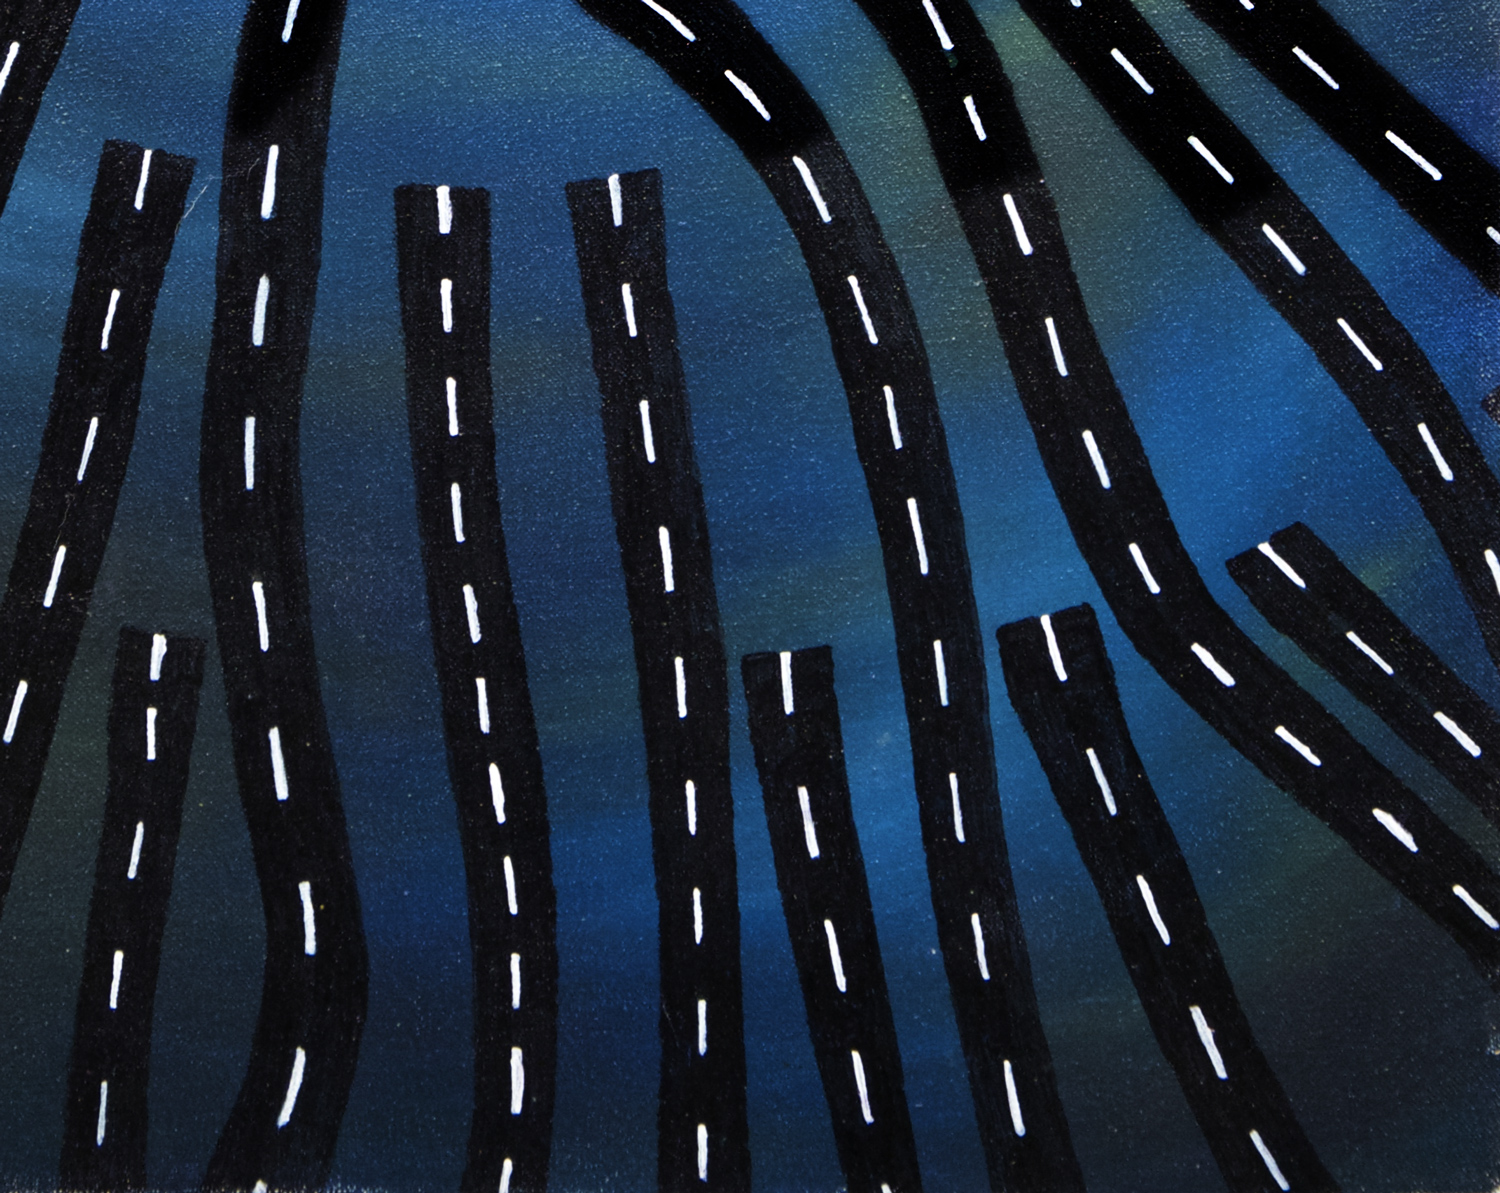 Every Road Leads Here #2 gouche and acrylic painting, by Billy Reiter